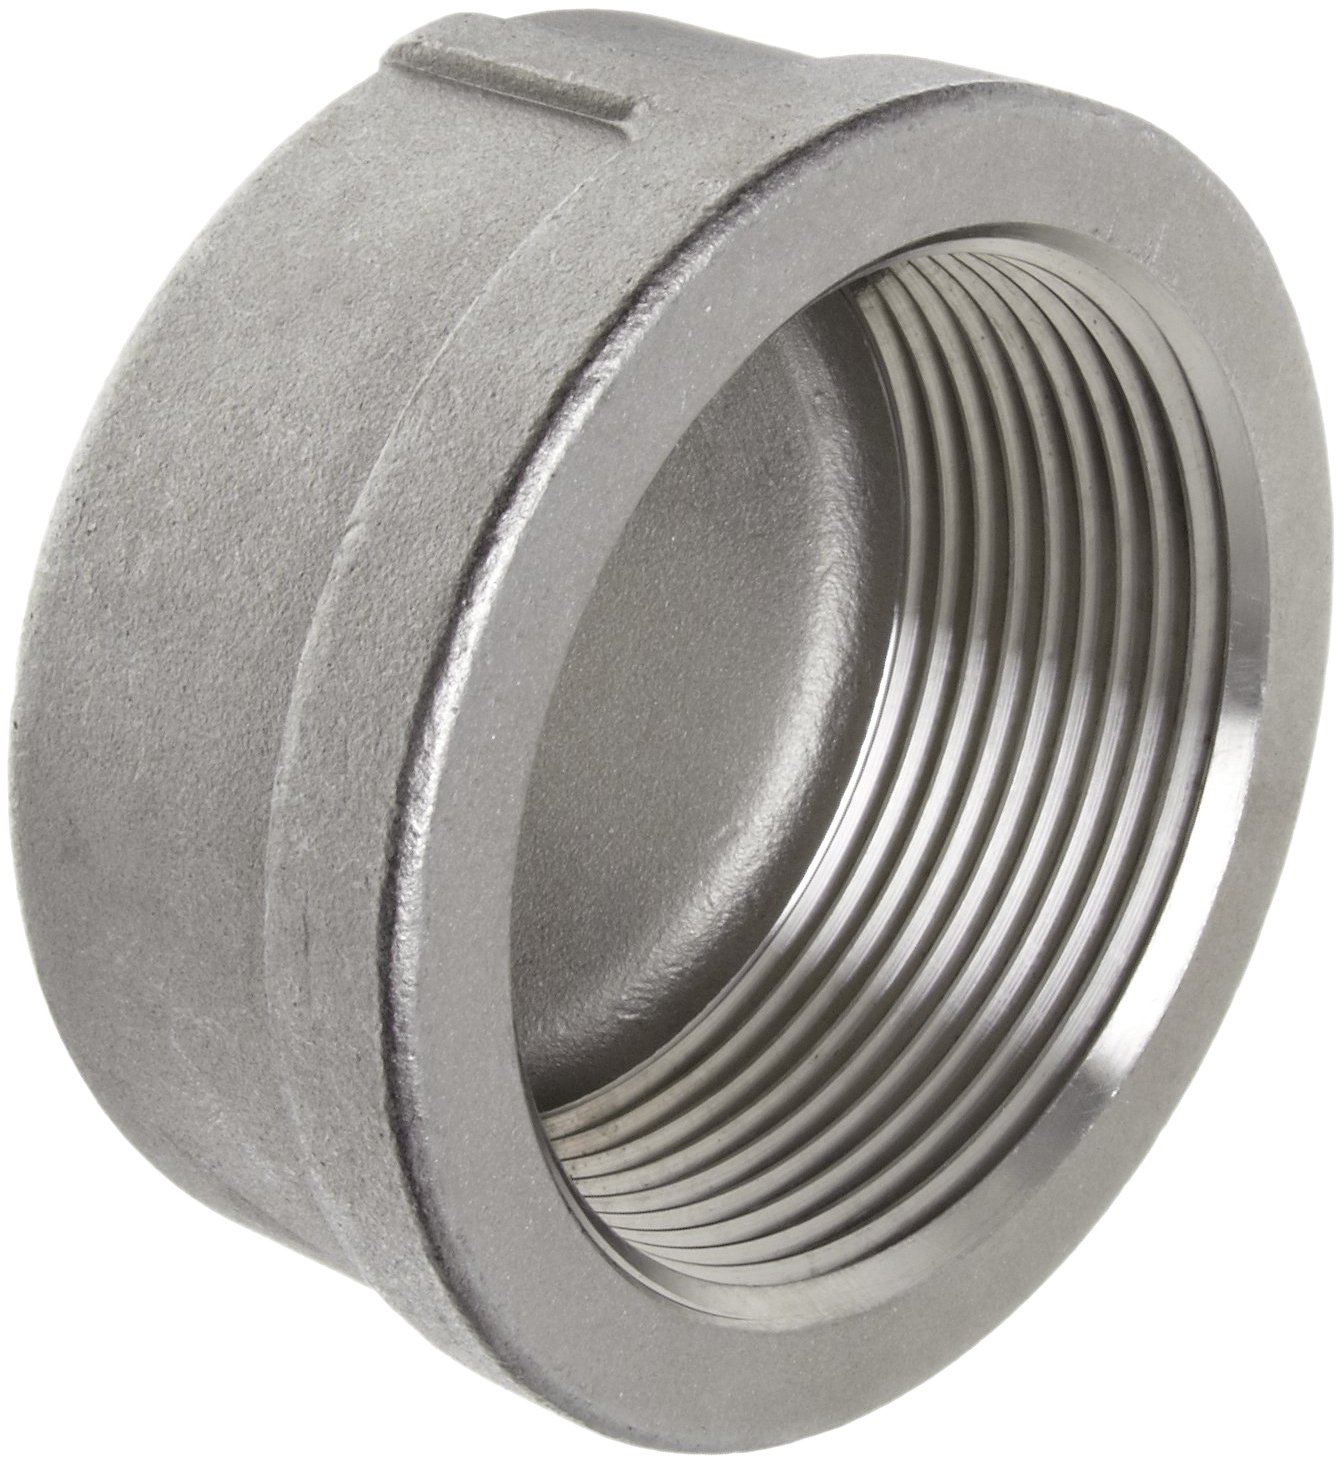 Stainless steel cast pipe fitting cap class